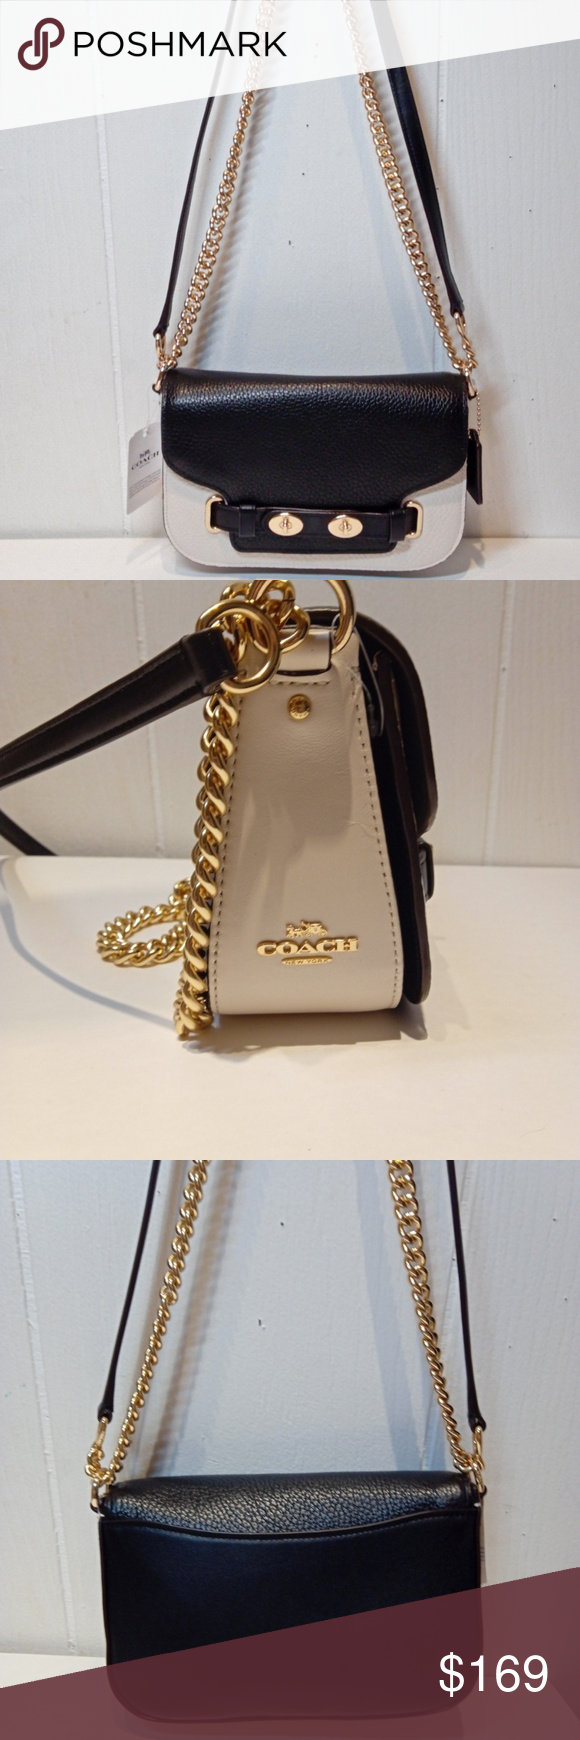 7ab6ab18223 NWT COACH Blake Crossbody 20 in Colorblock F30554 This is beautiful Brand  new with Tags in